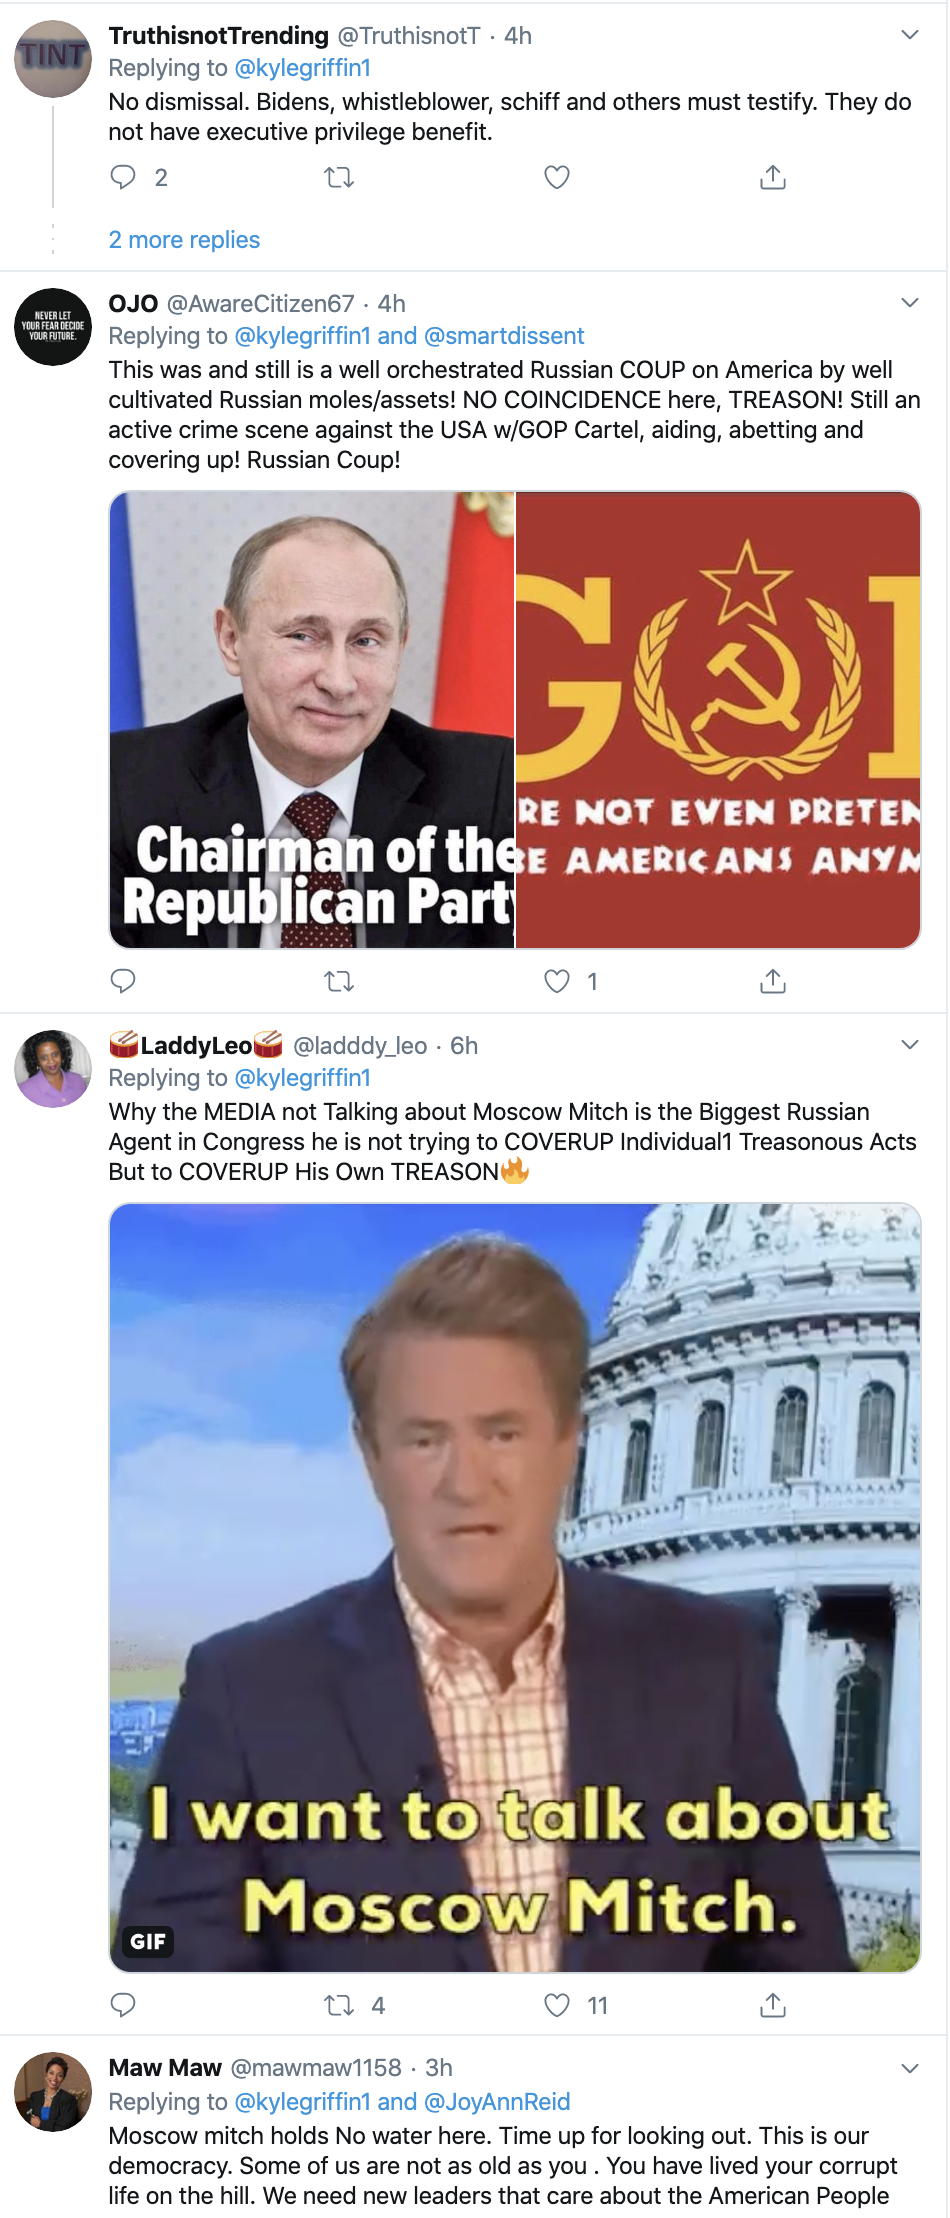 Screen-Shot-2020-01-14-at-2.43.07-PM McConnell Makes Tuesday Impeachment Announcement Donald Trump Featured Impeachment Investigation Top Stories